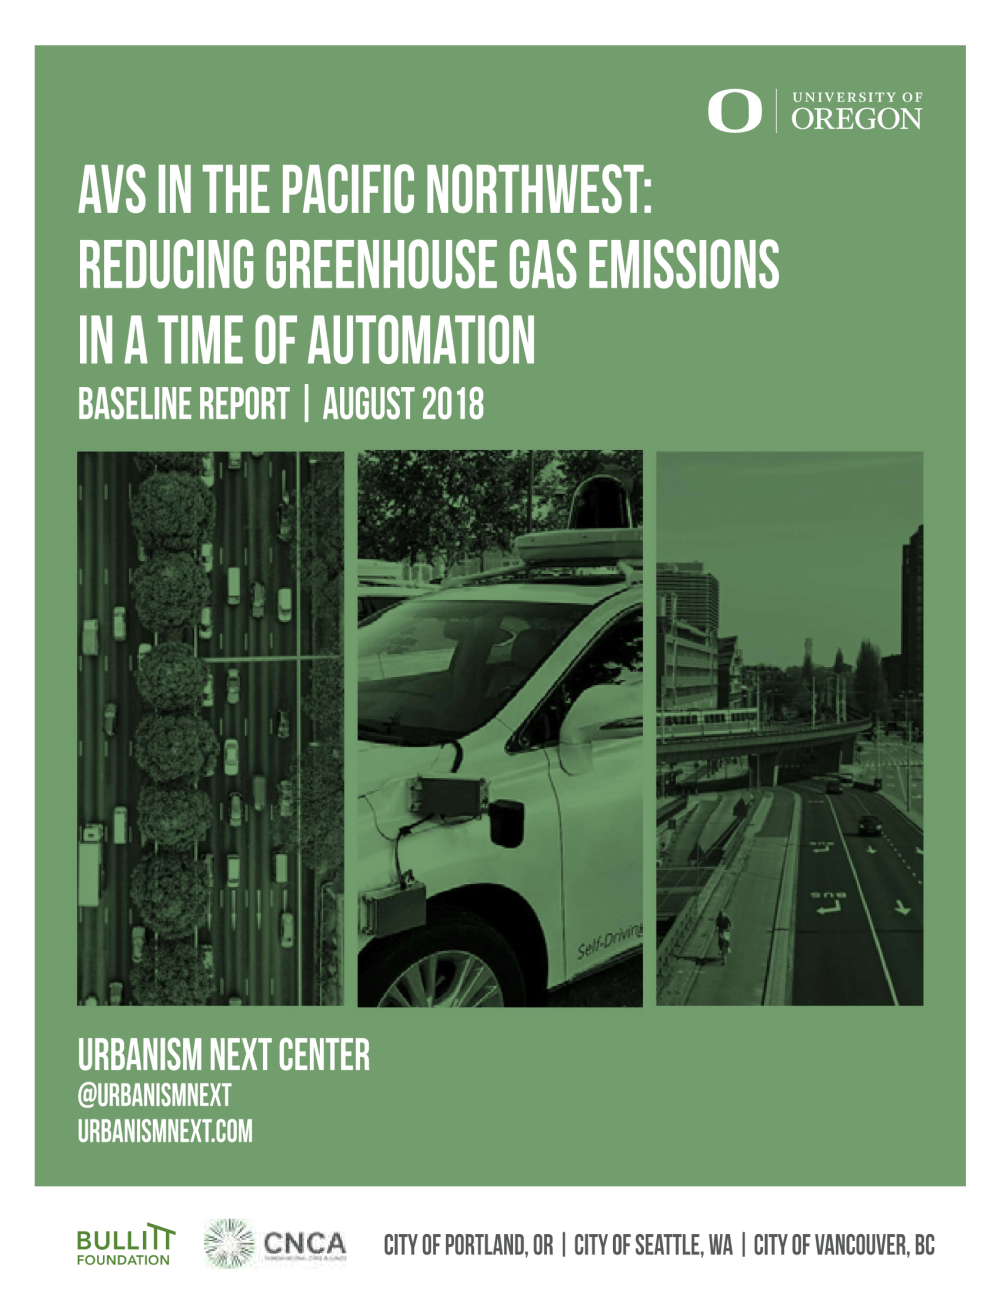 AVs in the Pacific Northwest: Reducing Greenhouse Gas Emissions in a Time of Automation